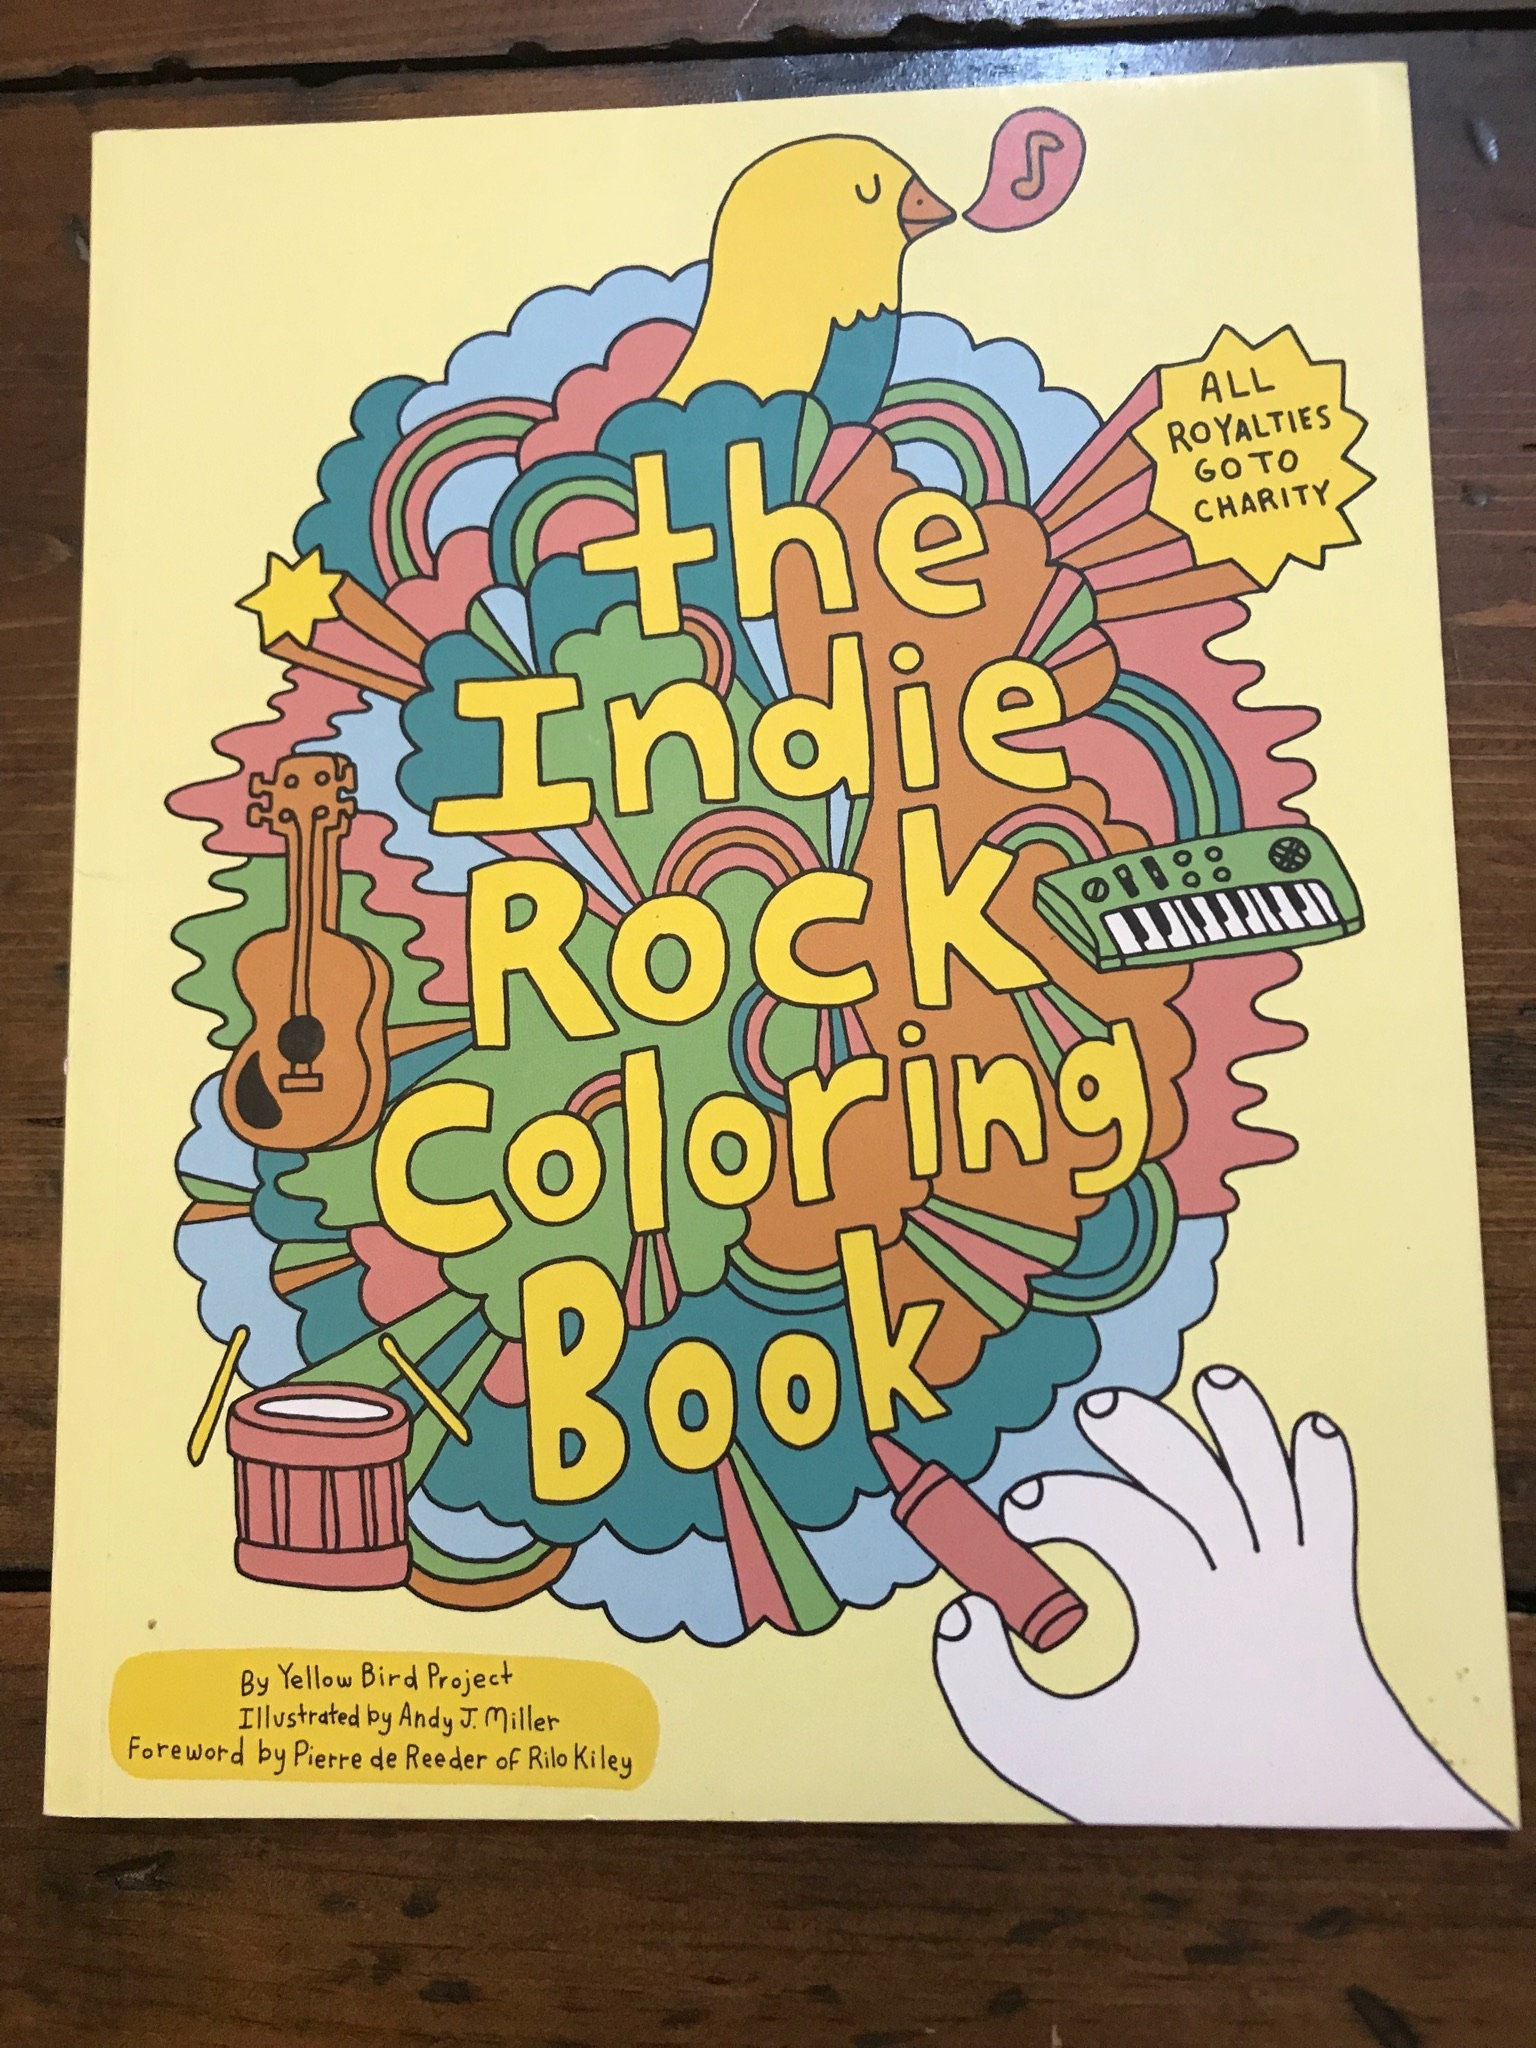 Indie Rock Coloring Book, Yellow Bird Project, Andy J Miller, Rock ...